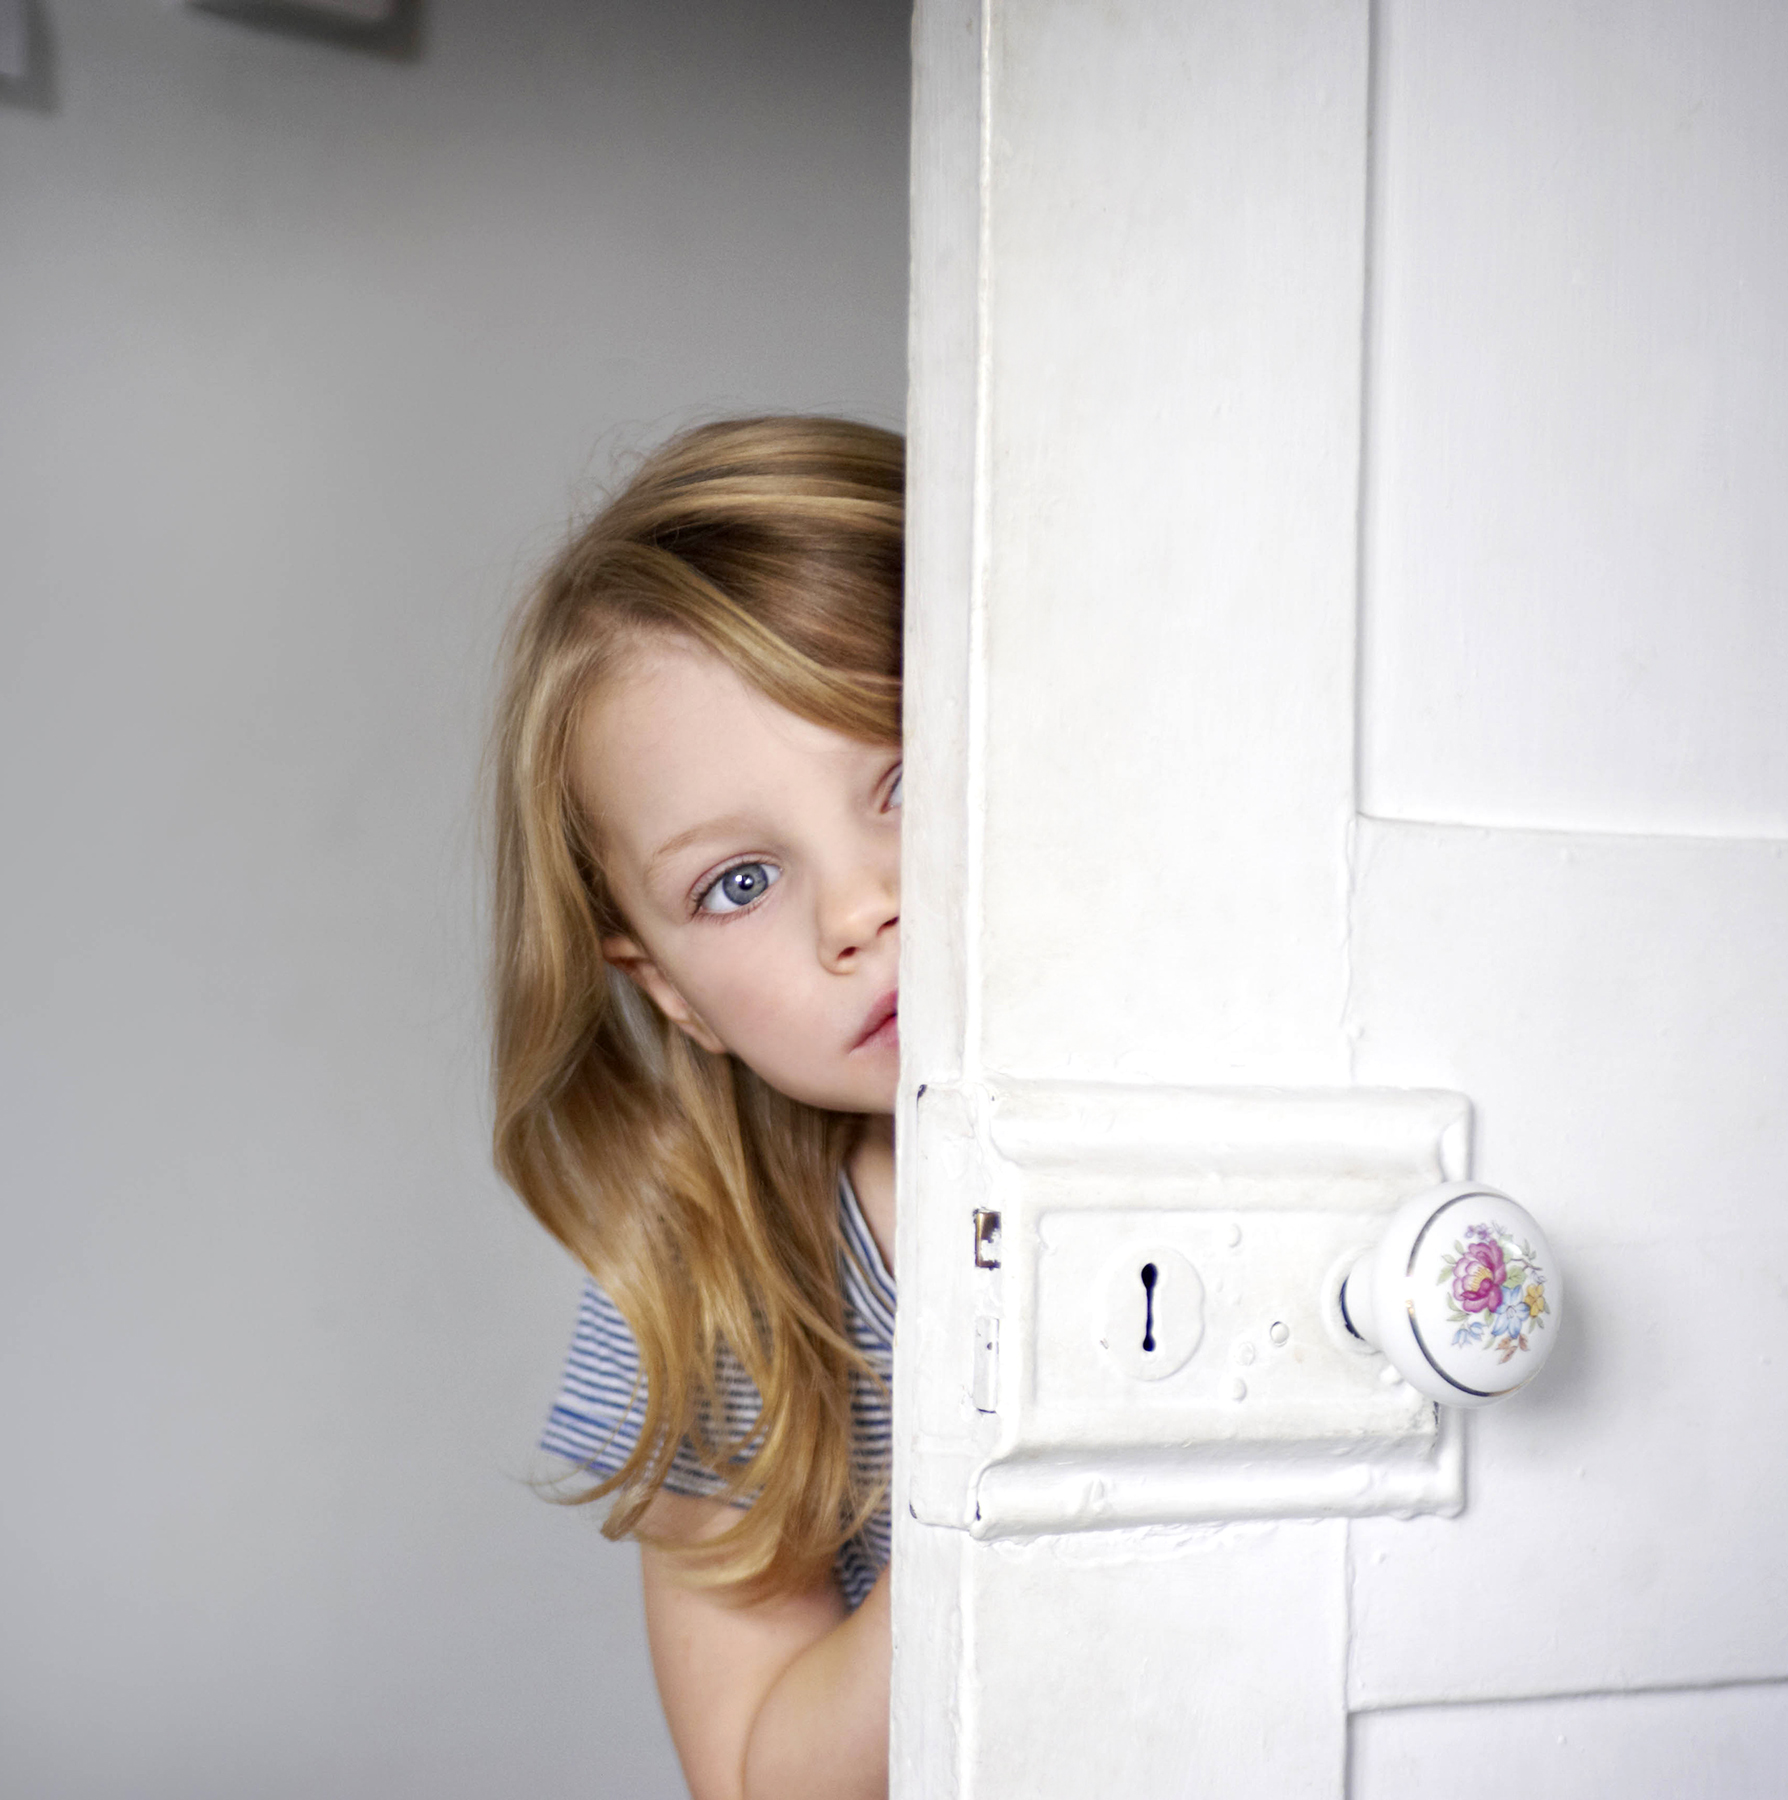 Image result for kid peeking around door